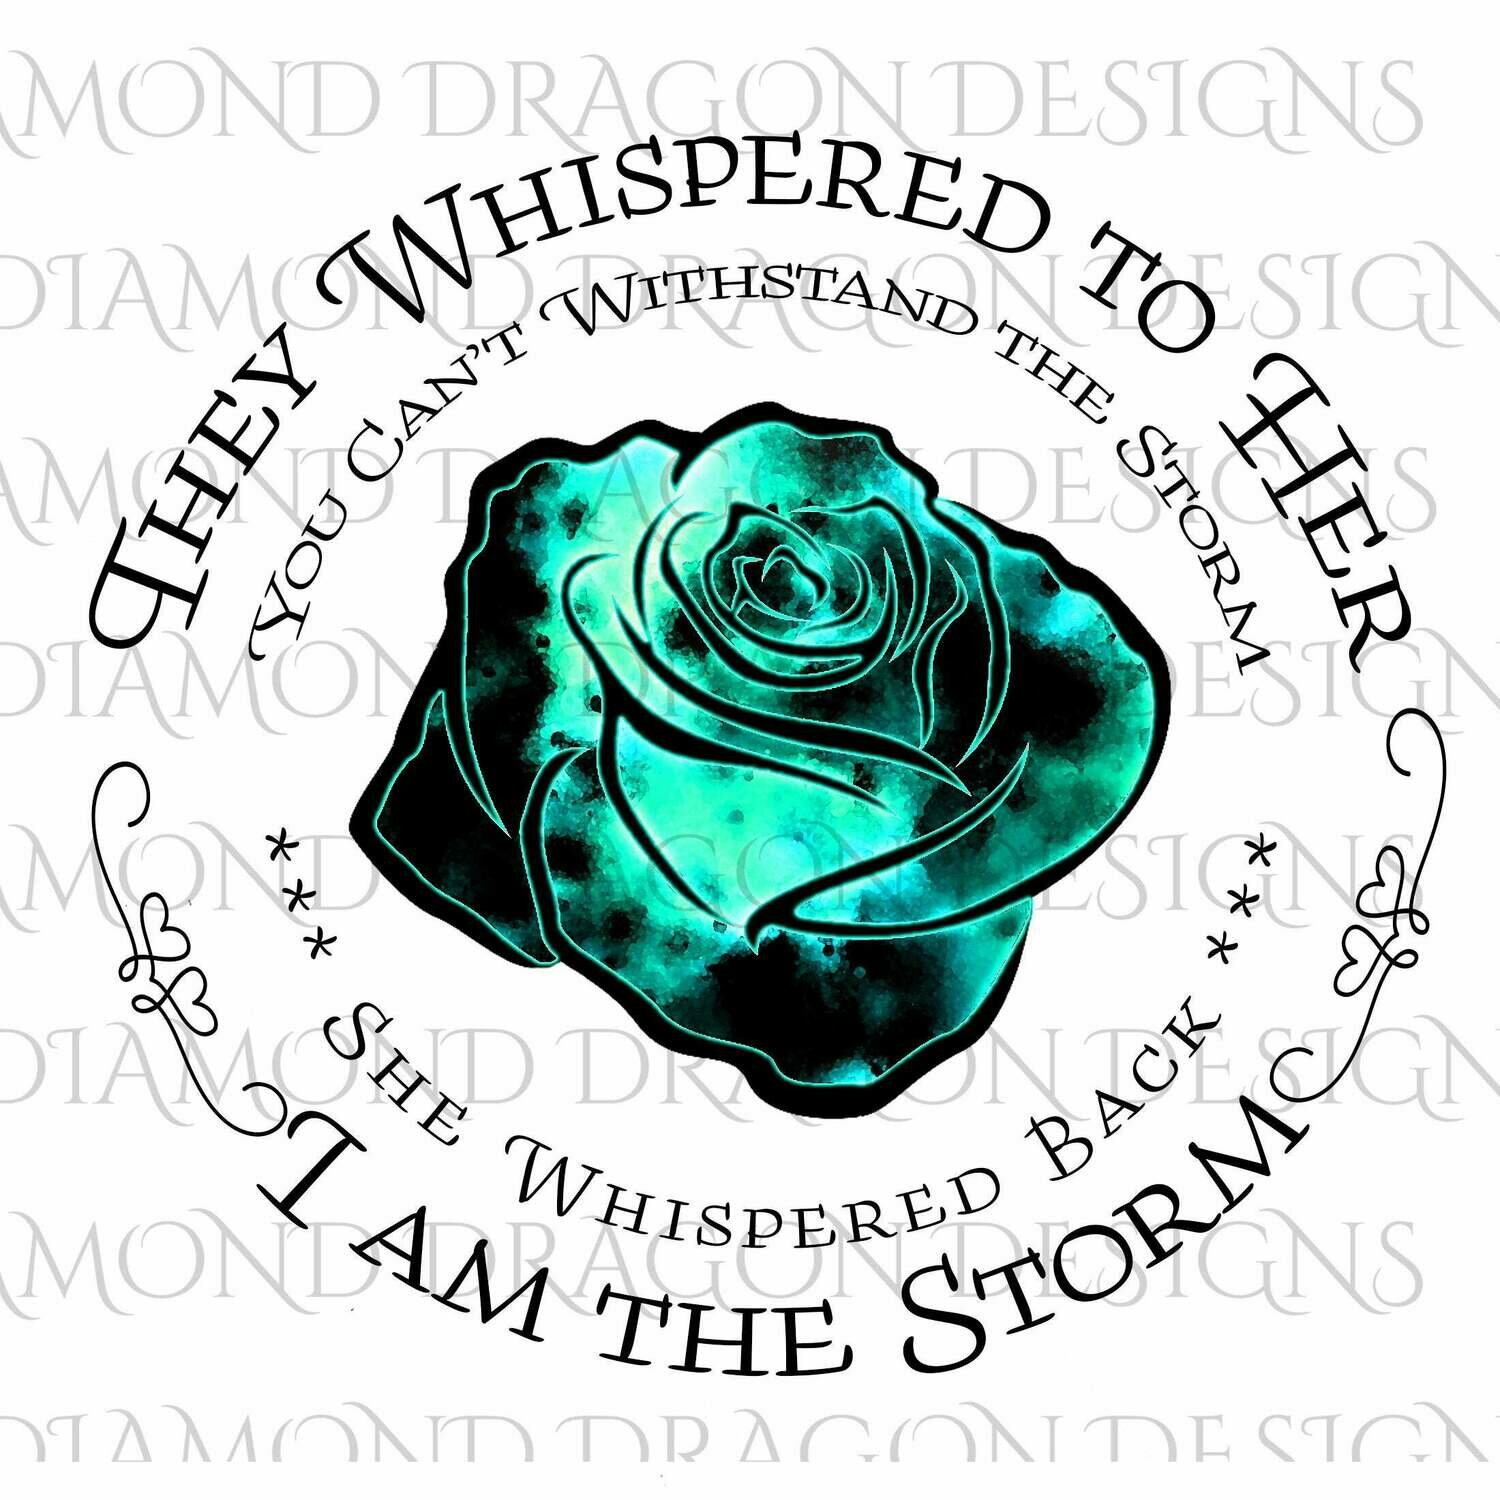 Flowers - They Whispered to Her, Cannot Withstand the Storm, I am the Storm, Quote, Teal Watercolor Galaxy, Rose, Digital Image